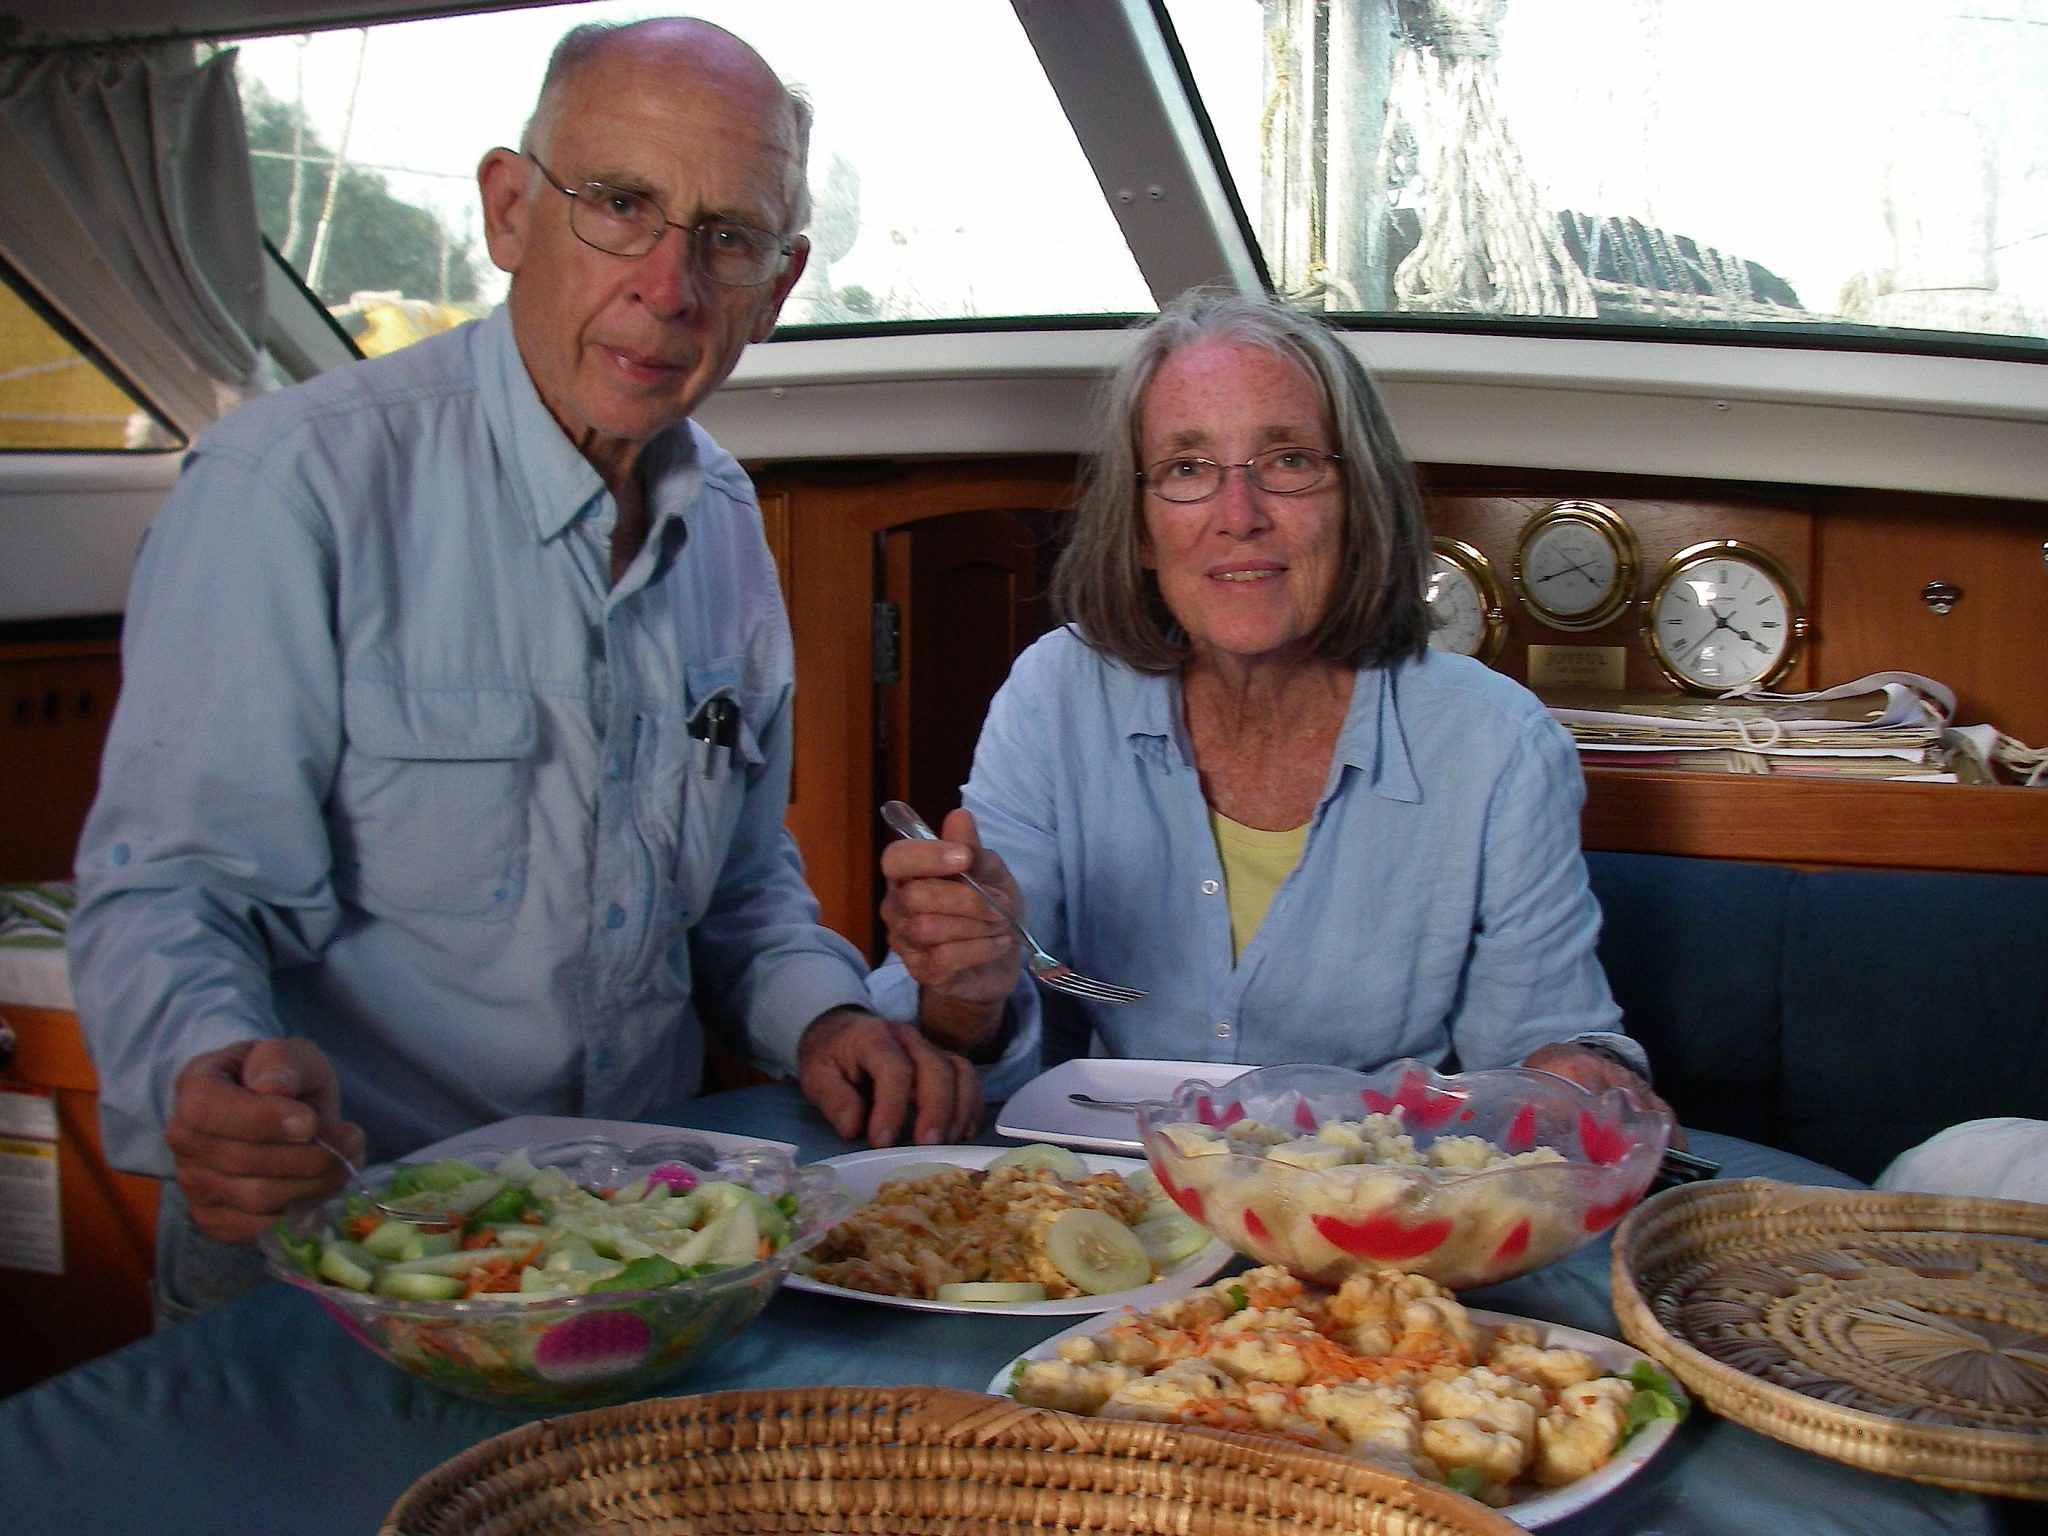 167. Bon Voyage feast - Jeff and Anne enjoy Soakai's family feast on Joyful before they set sail for Vanuatu